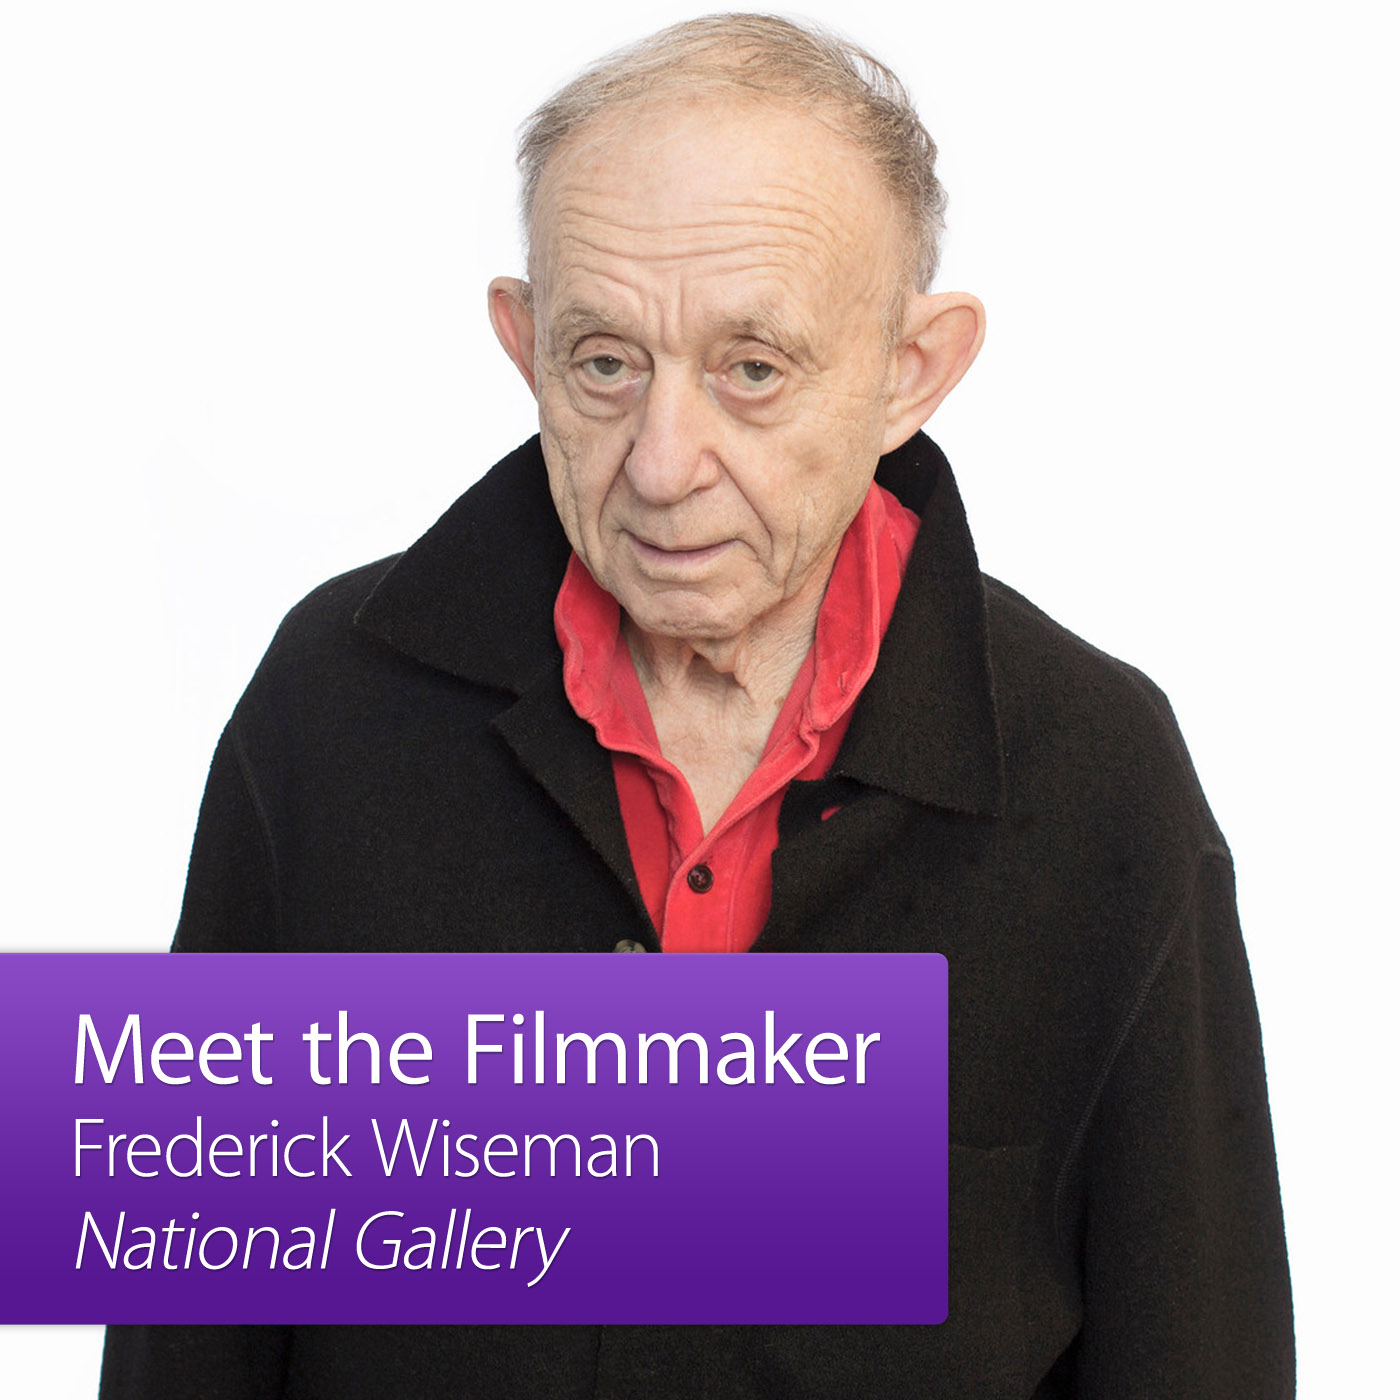 Frederick Wiseman: Meet the Filmmaker